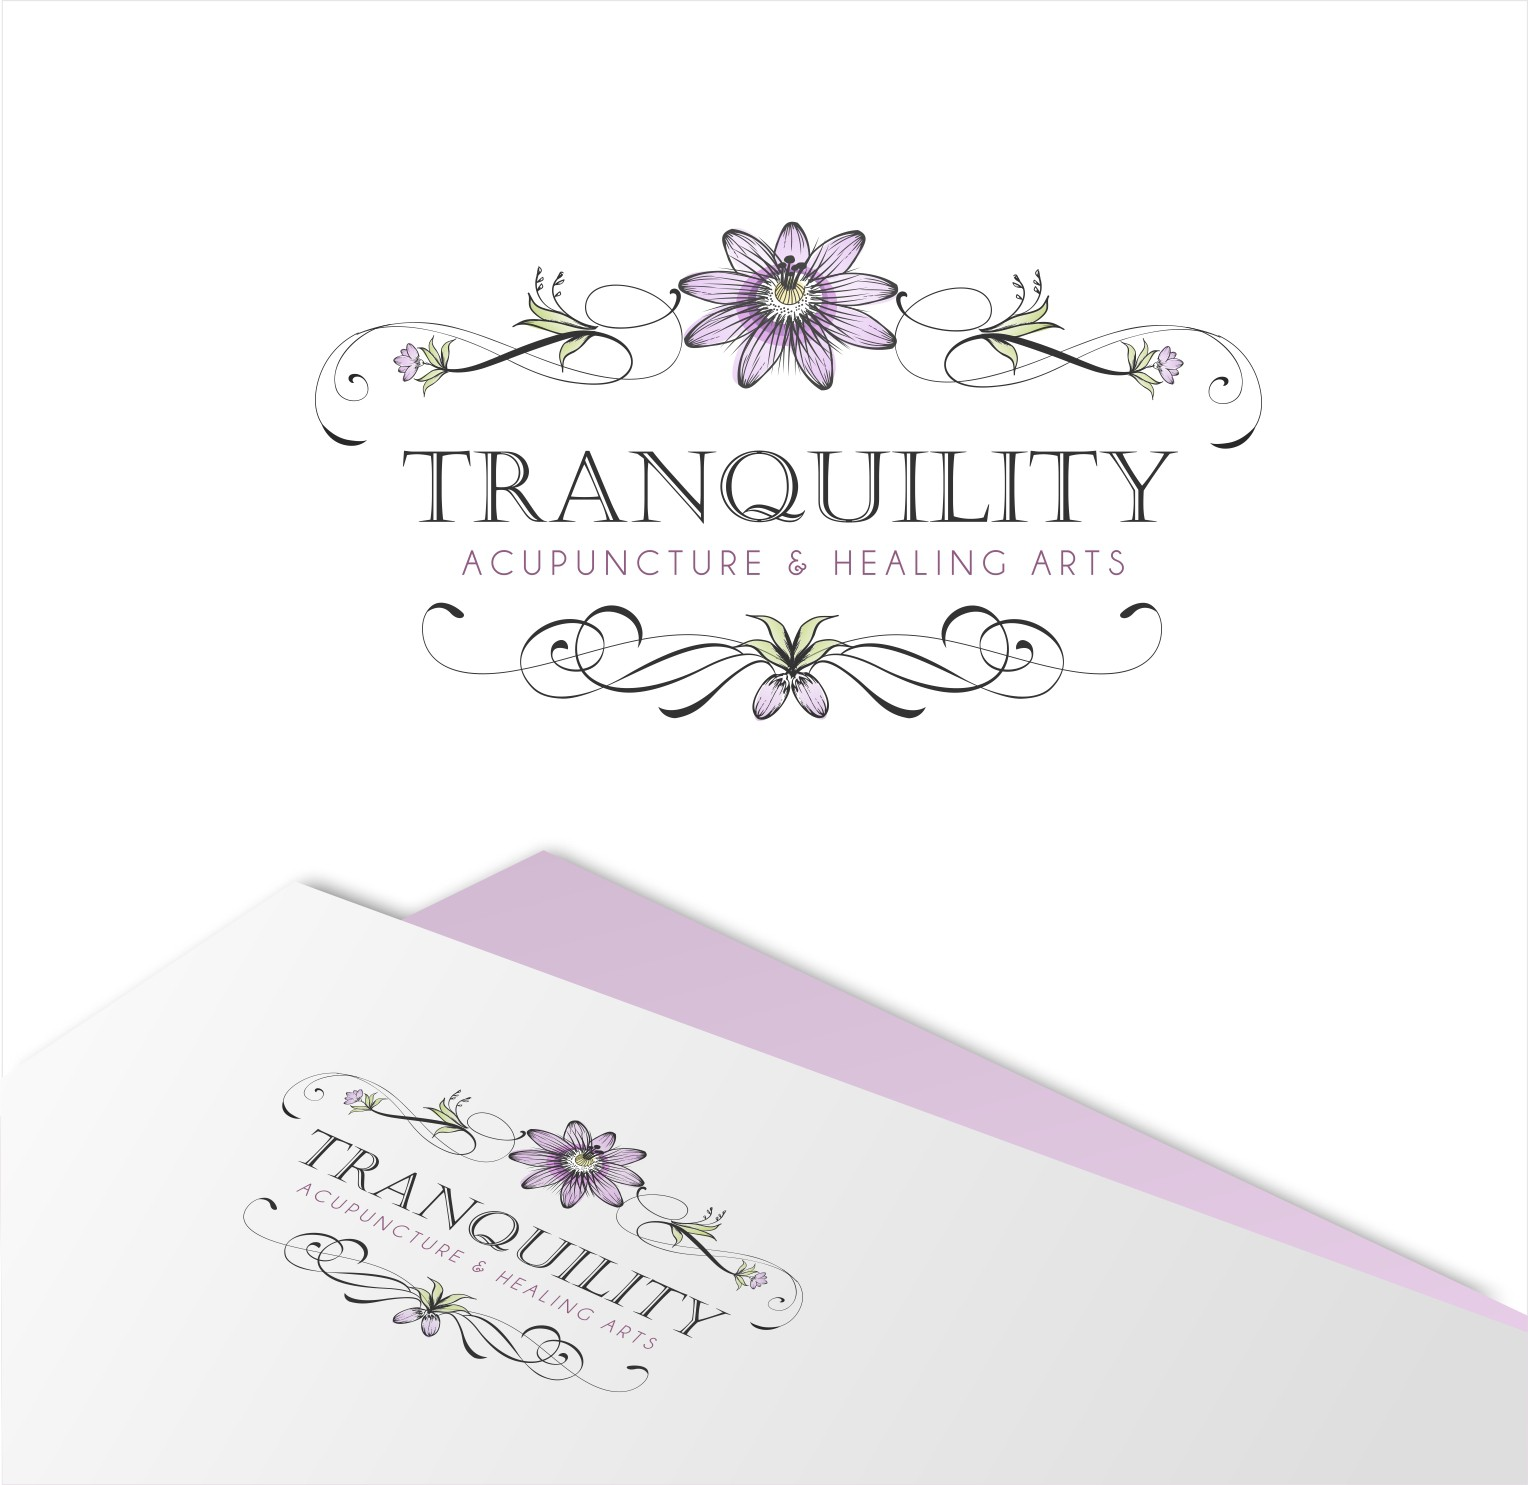 Unique, stunning design for Tranquility Acupuncture & Healing Arts